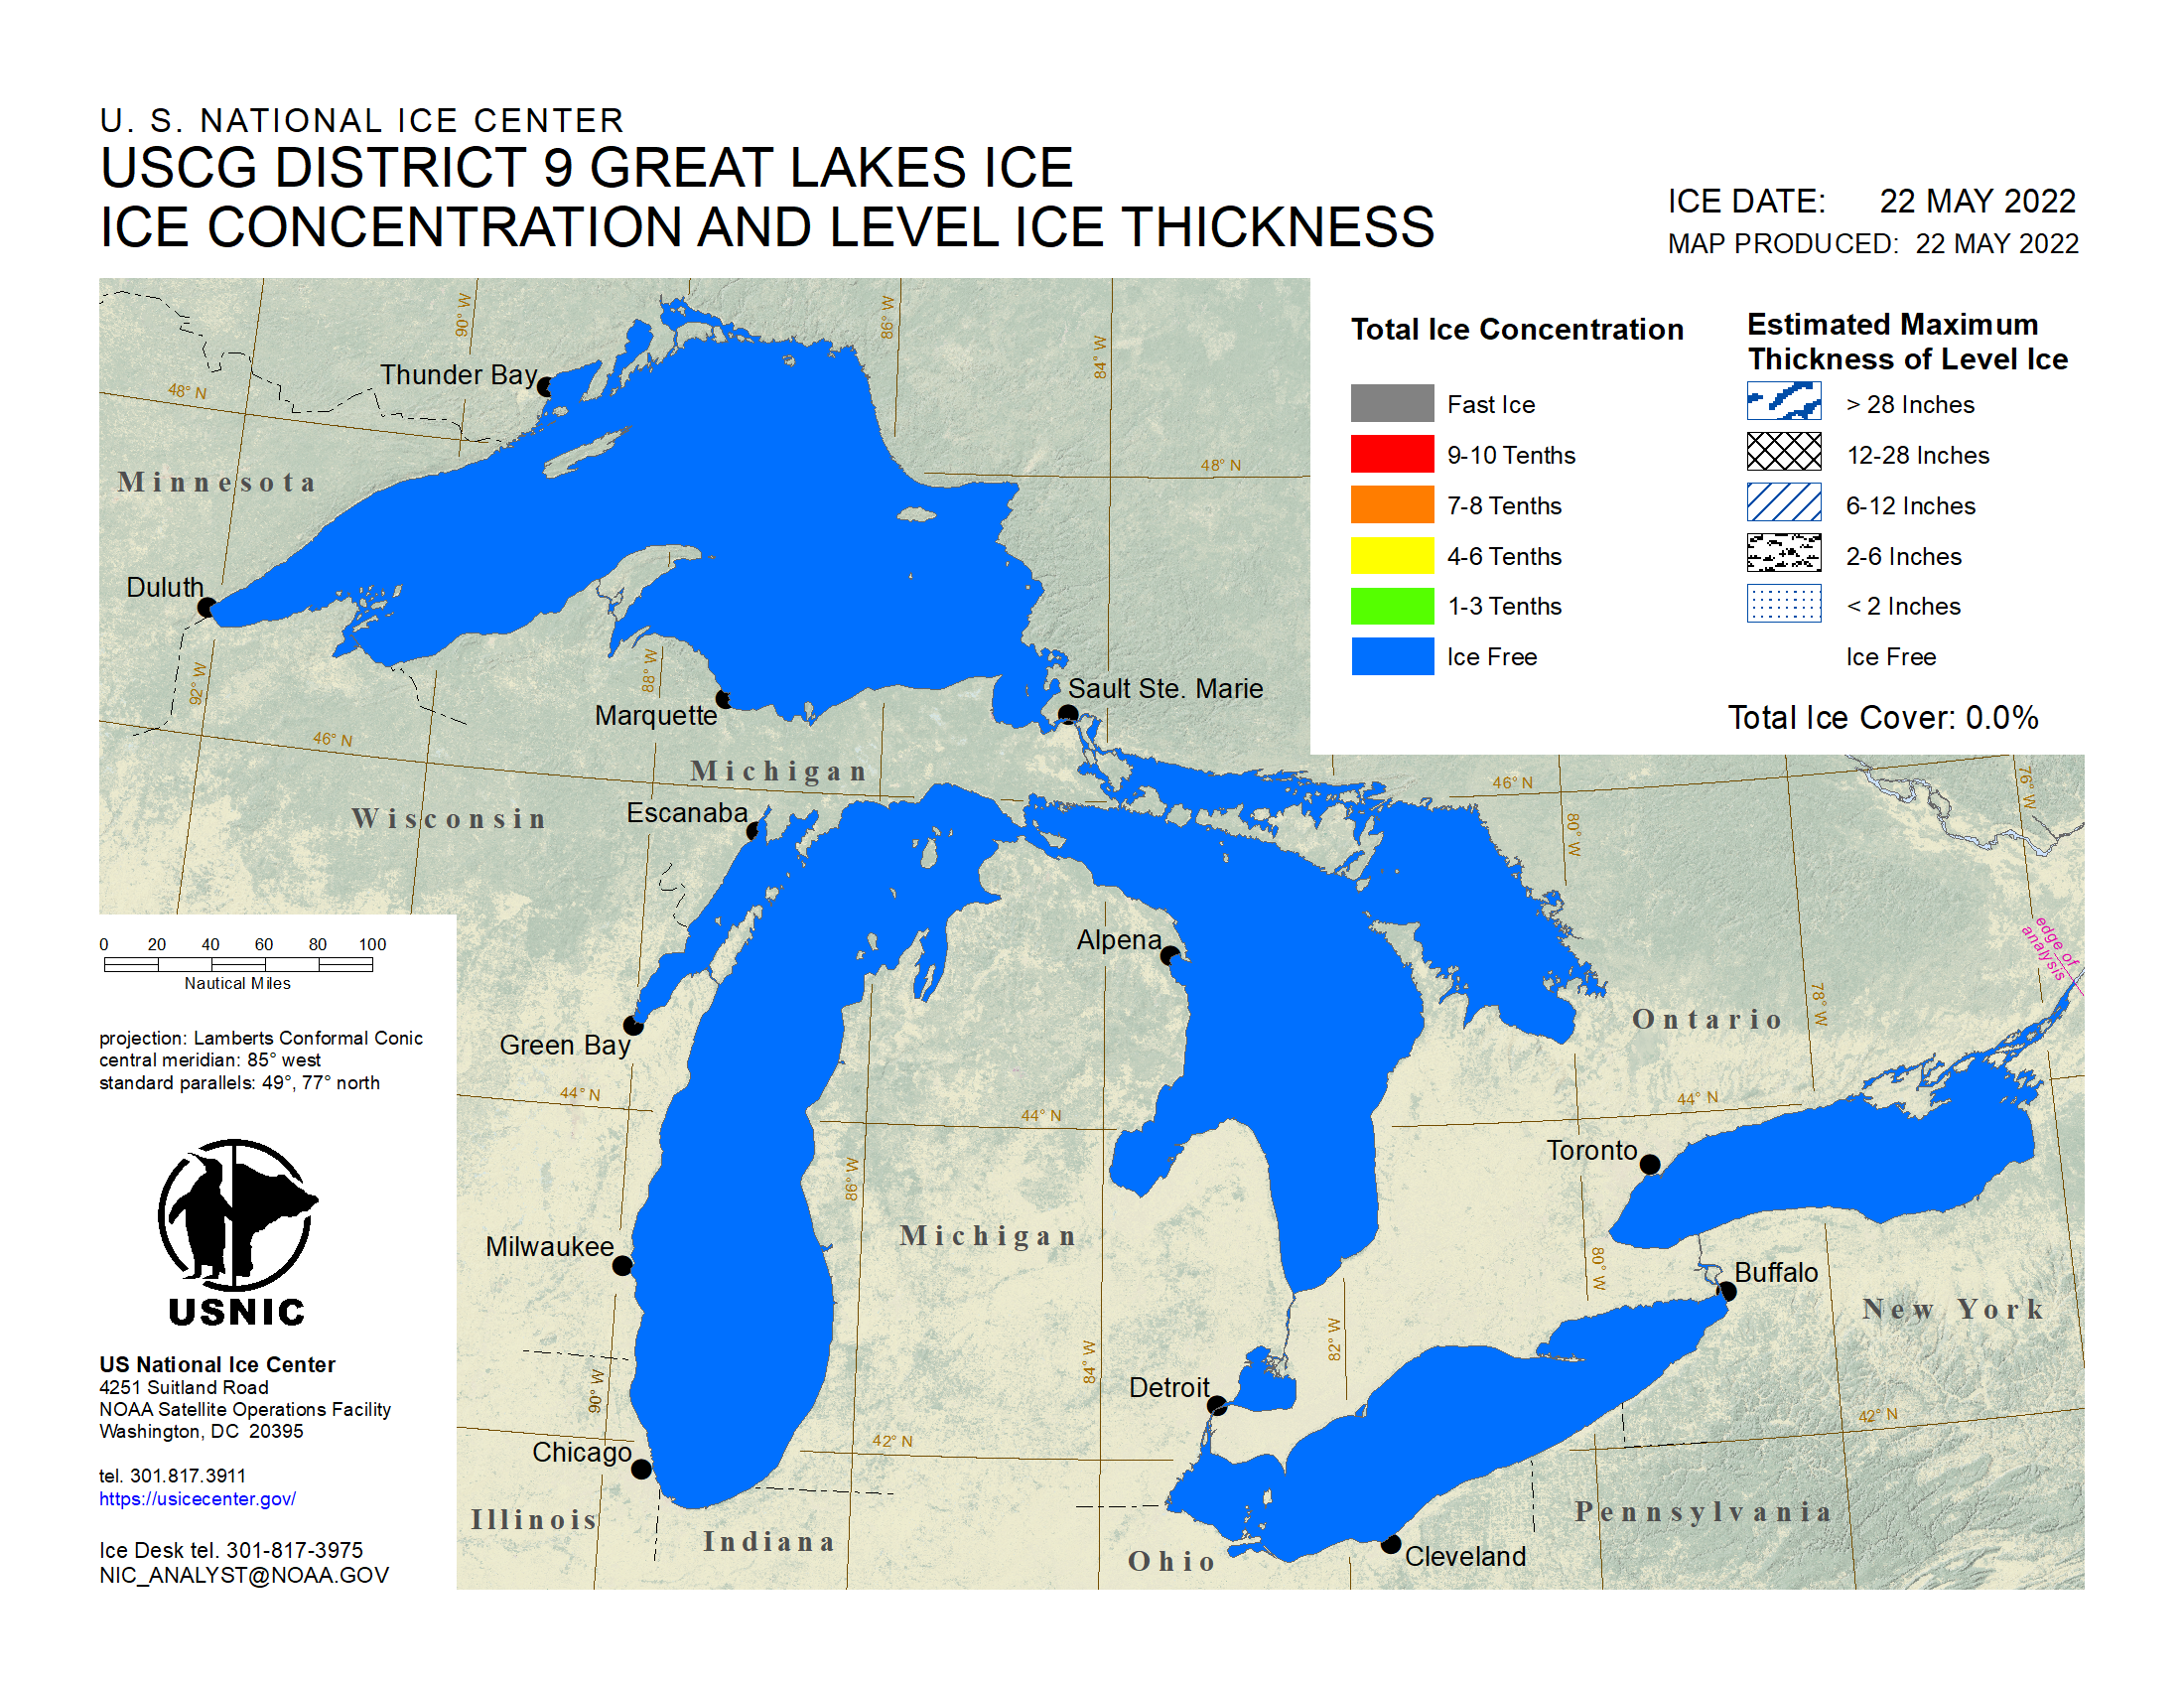 Great Lakes Ice Chart (Concentration & Thickness)